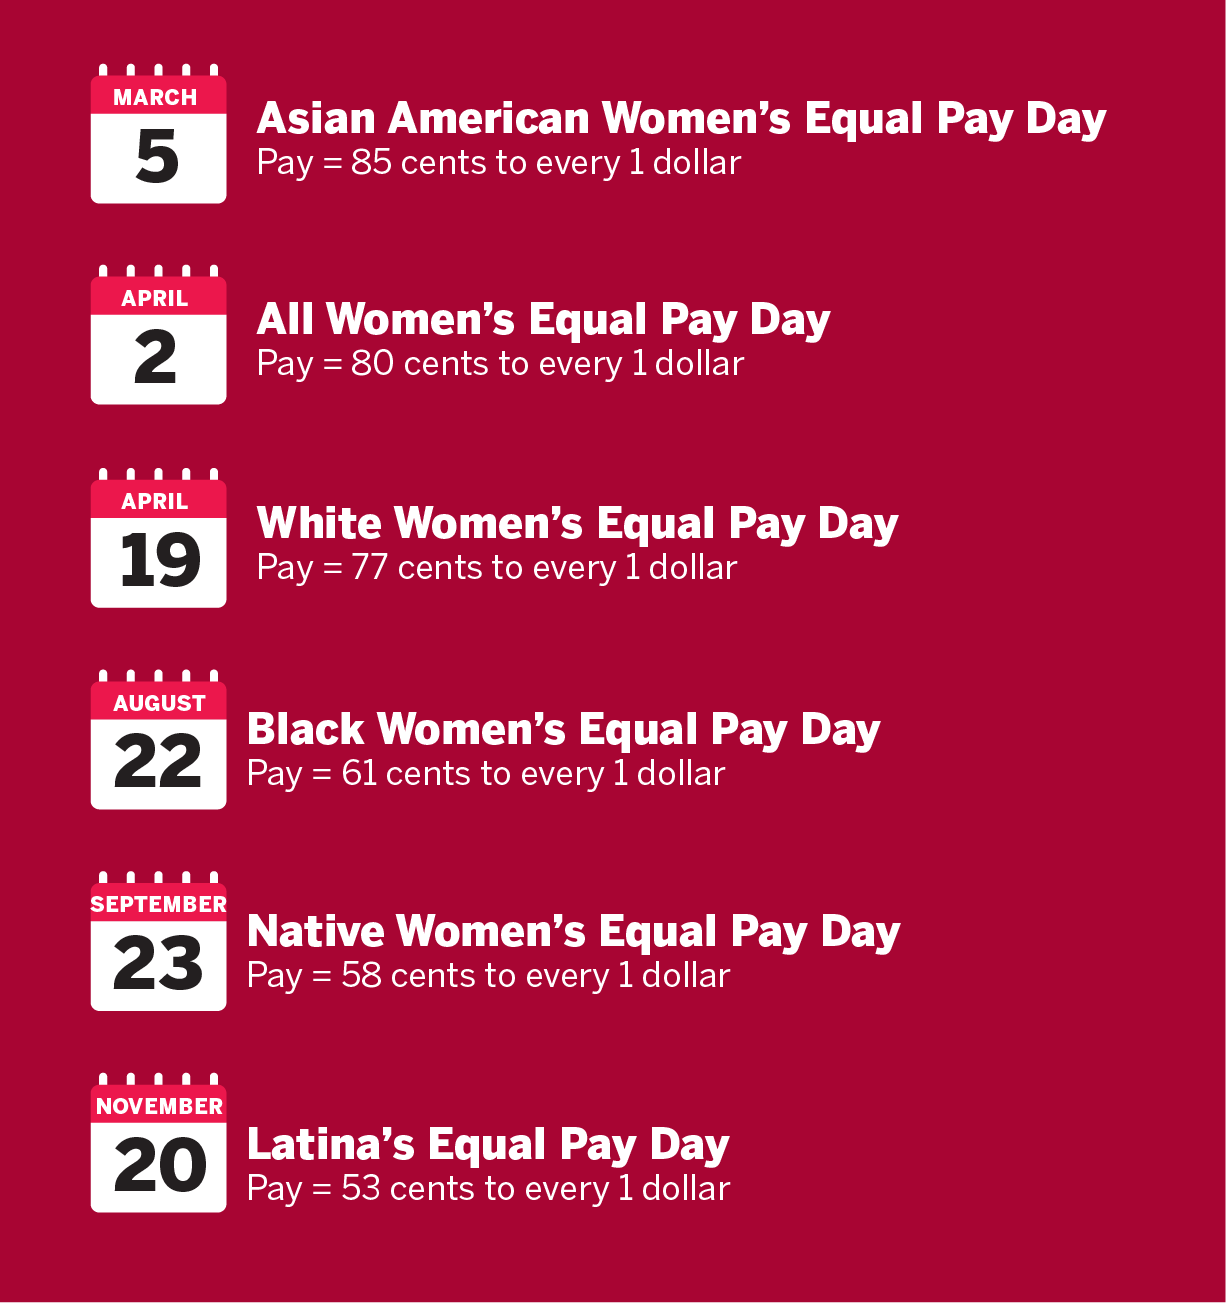 March 5 is Asian American Women's Equal Pay Day. Pay = 85 cents to every 1 dollar. April 2 is All Women's Equal Pay Day. Pay = 80 cents to every 1 dollar. April 19 is White Women's Equal Pay Day. Pay = 77 cents to every 1 dollar. August 22 is Black Women's Equal Pay Day. Pay = 61 cents to every 1 dollar. September 23 is Native Women's Equal Pay Day. Pay = 58 cents to every 1 dollar. November 20 is Latina's Equal Pay Day. Pay = 53 cents to every 1 dollar.